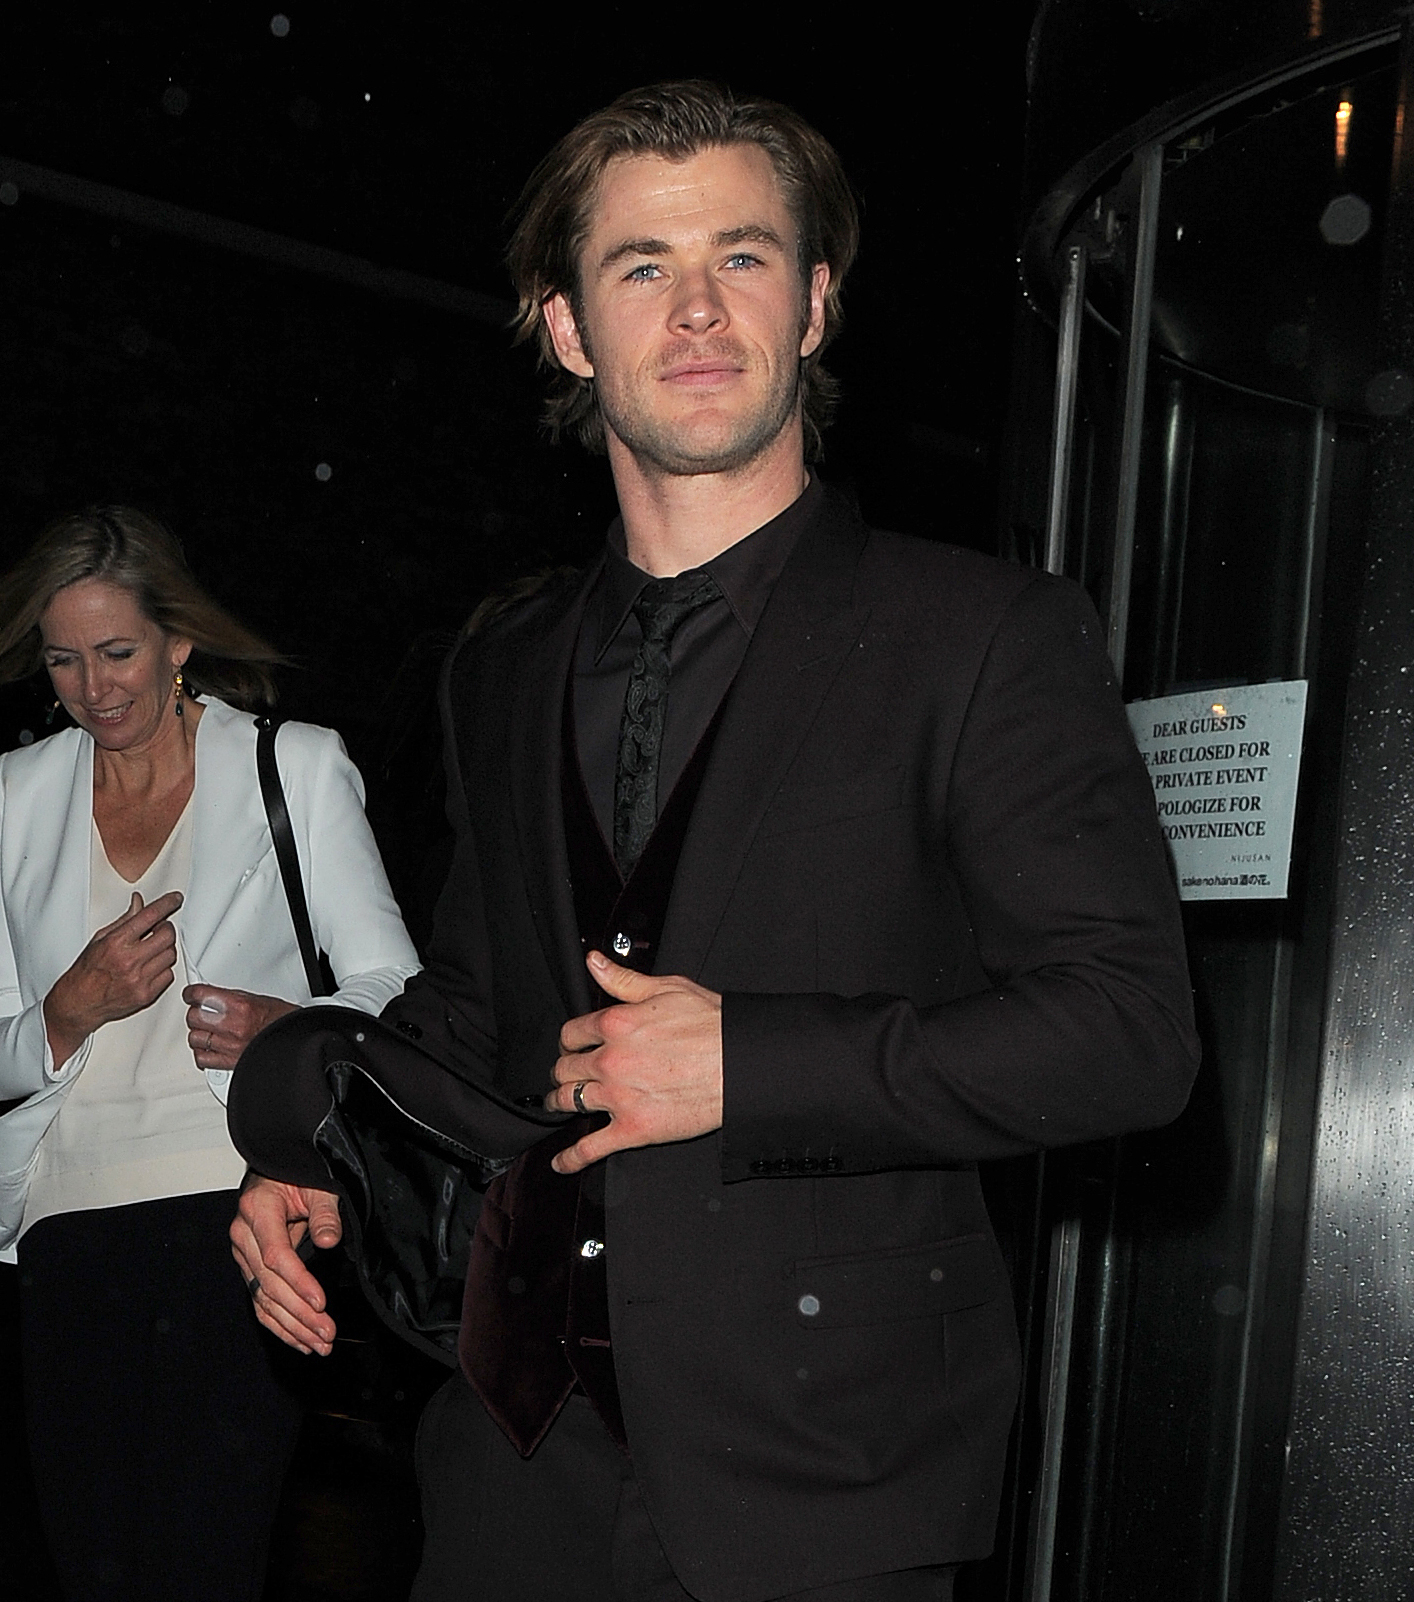 Chris Hemsworth was solo when he arrived at the Thor: The Dark World premiere afterparty in London on Tuesday.